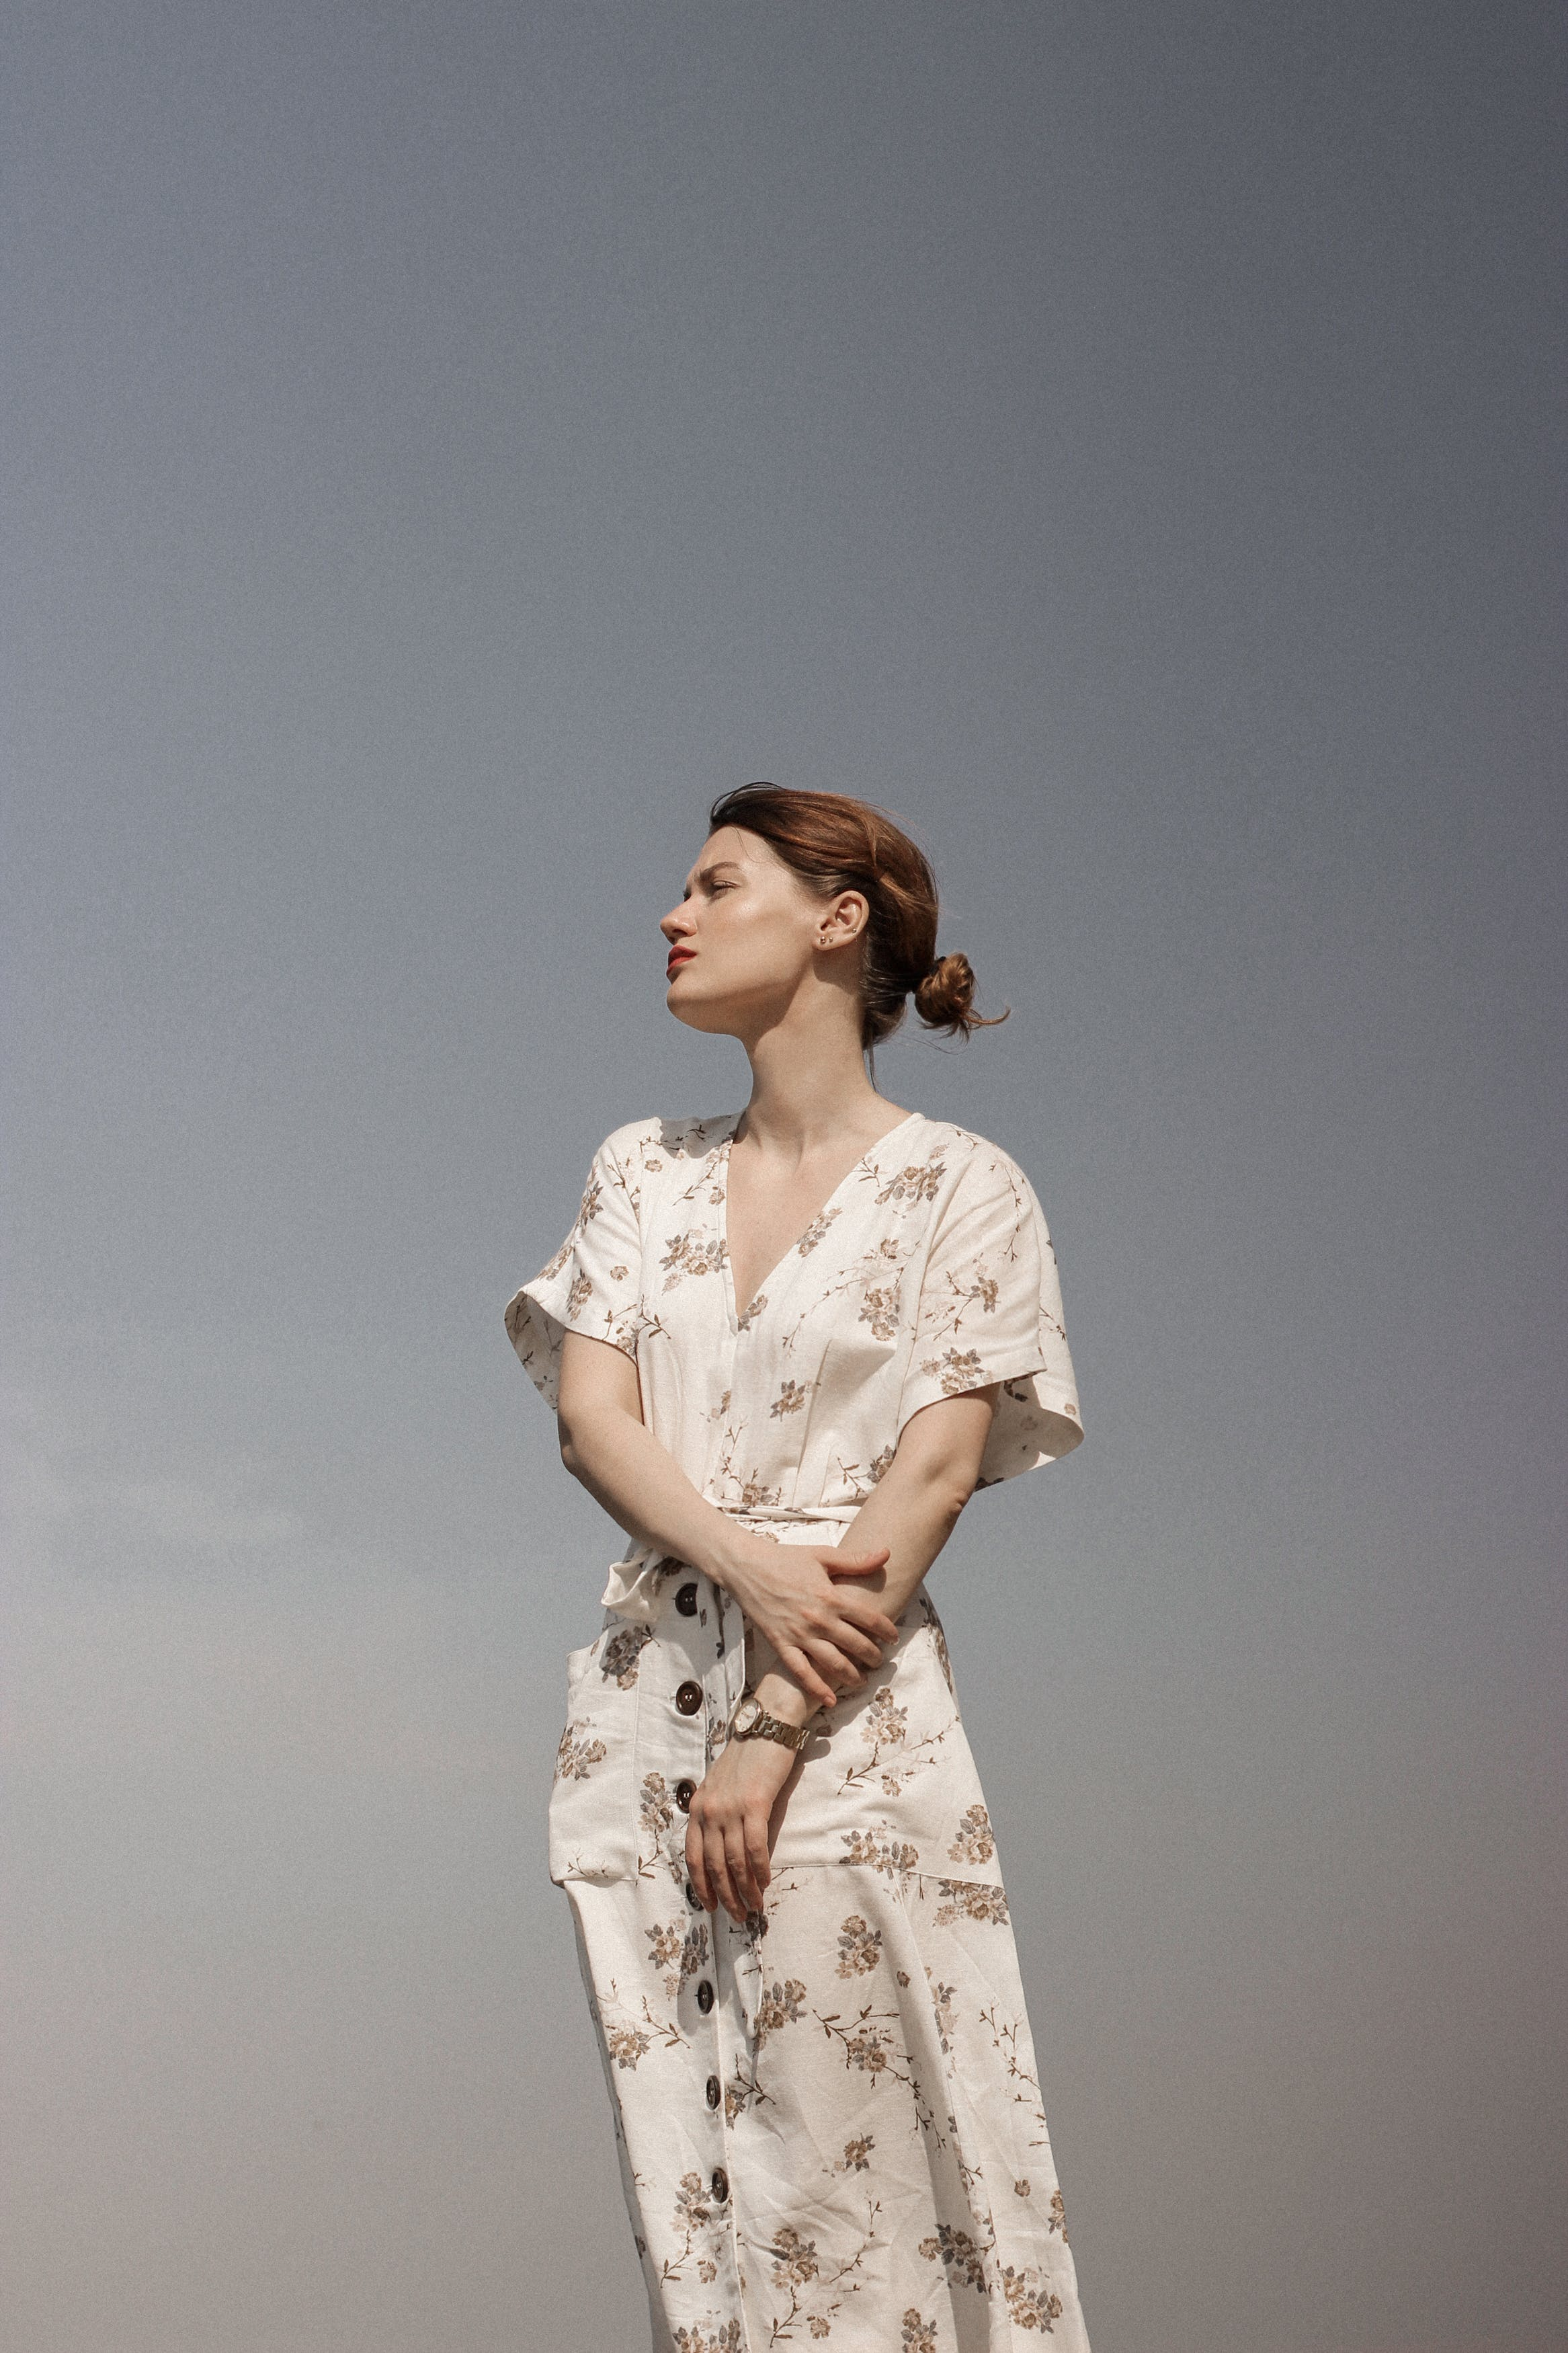 Woman in White and Brown Floral Dress